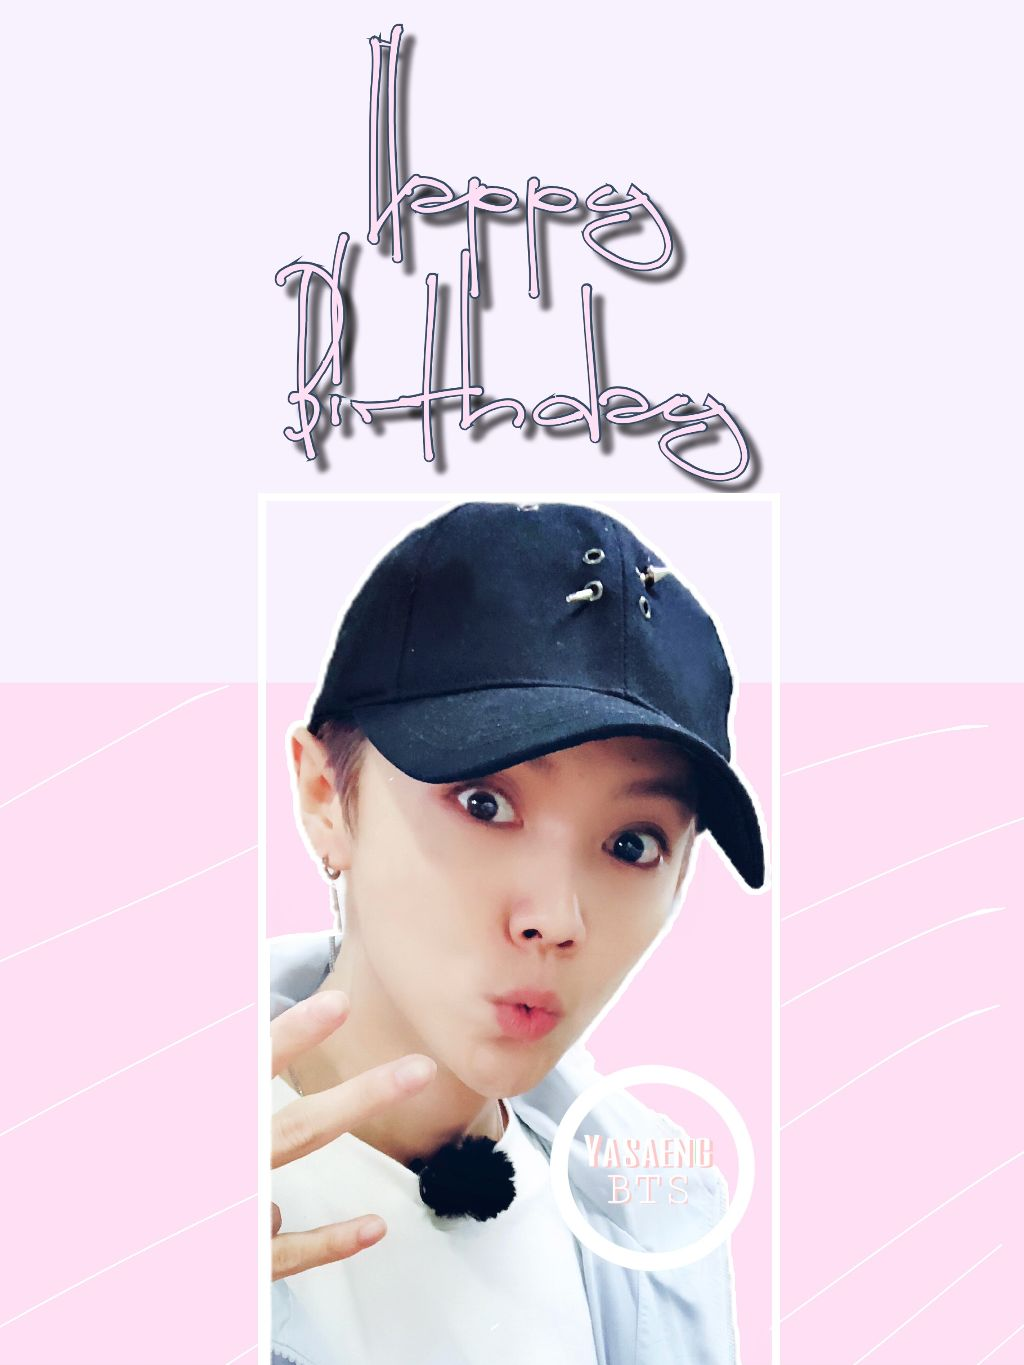 ≻ahhhhhh happy belated birthday luhan 😭💕    thanks for the belated info @kpop_armyy01 😂    ≻ request are open     comment yours down below!   #luhan #kpop #kpopedit #exoluhan #exo #luhanedit   #freetoedit